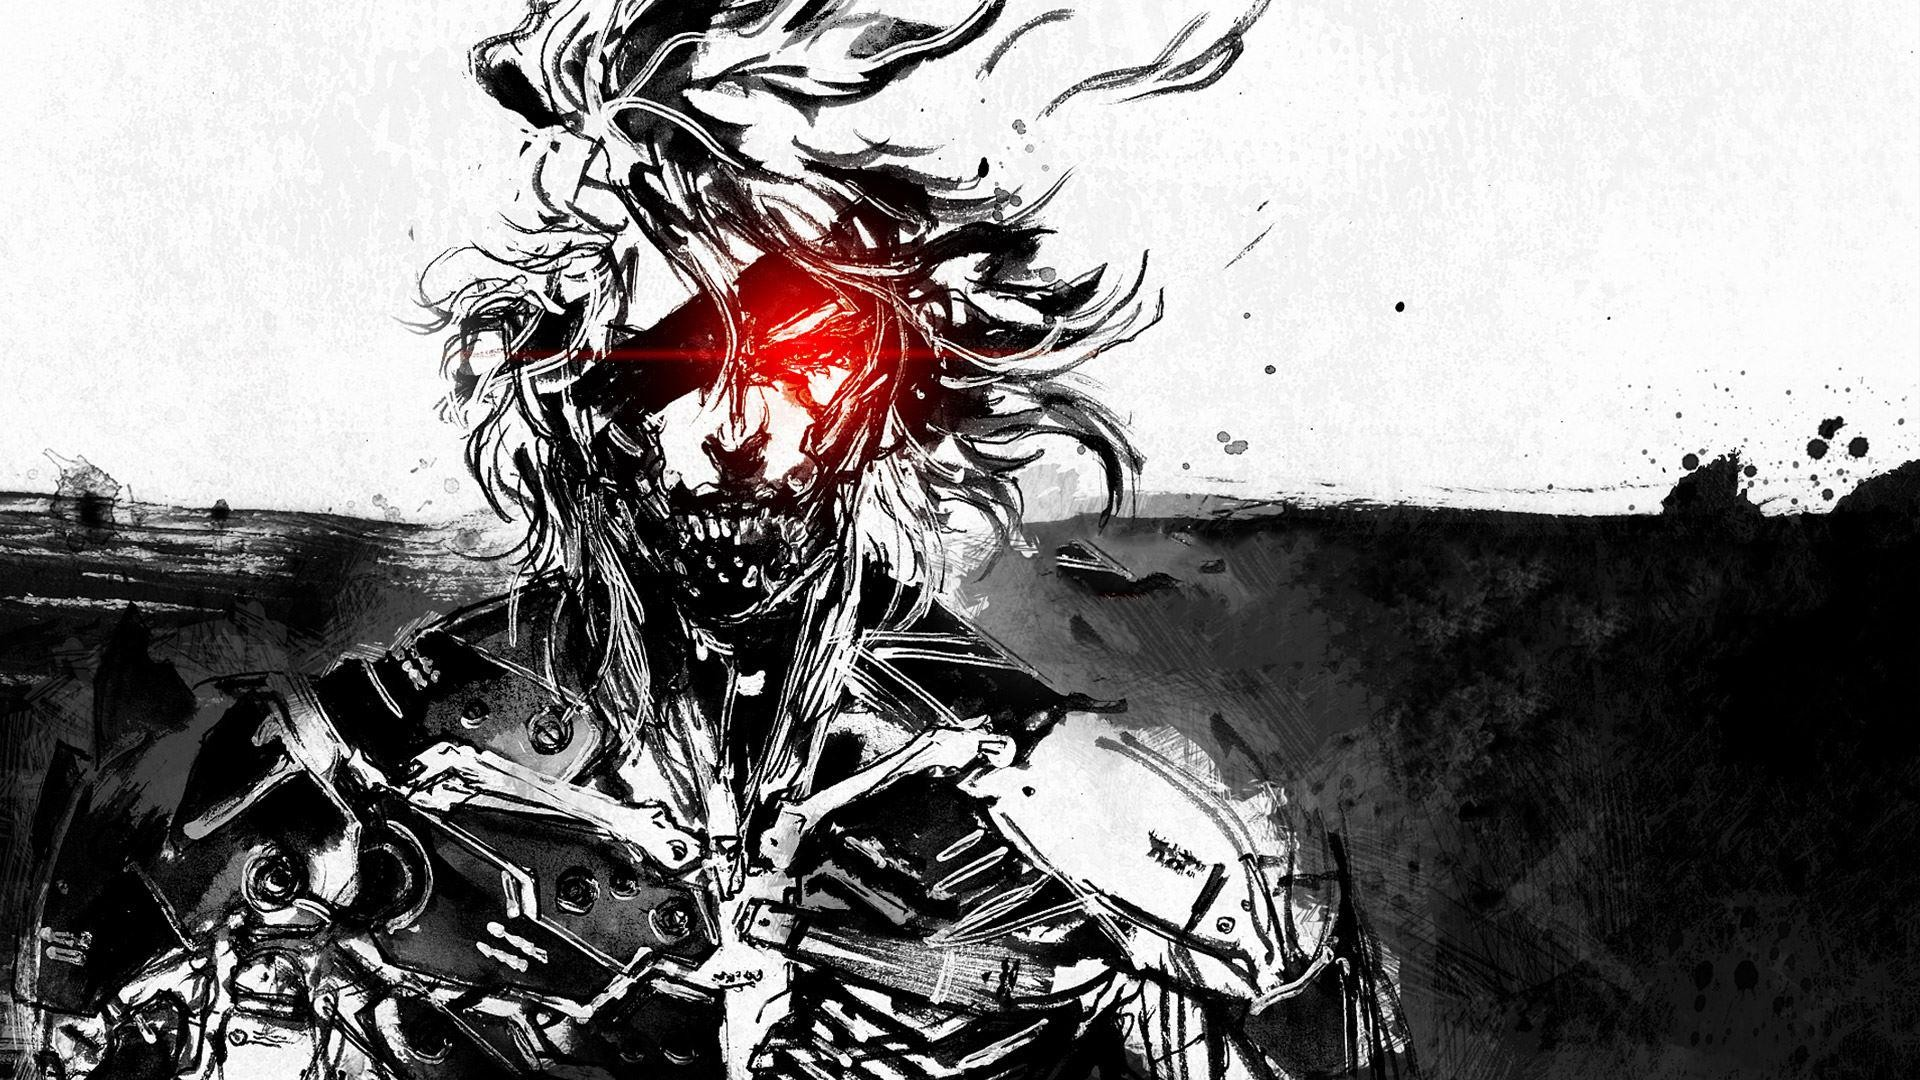 Metal gear solid rising wallpapers 77 images - Metal gear solid desktop wallpaper ...